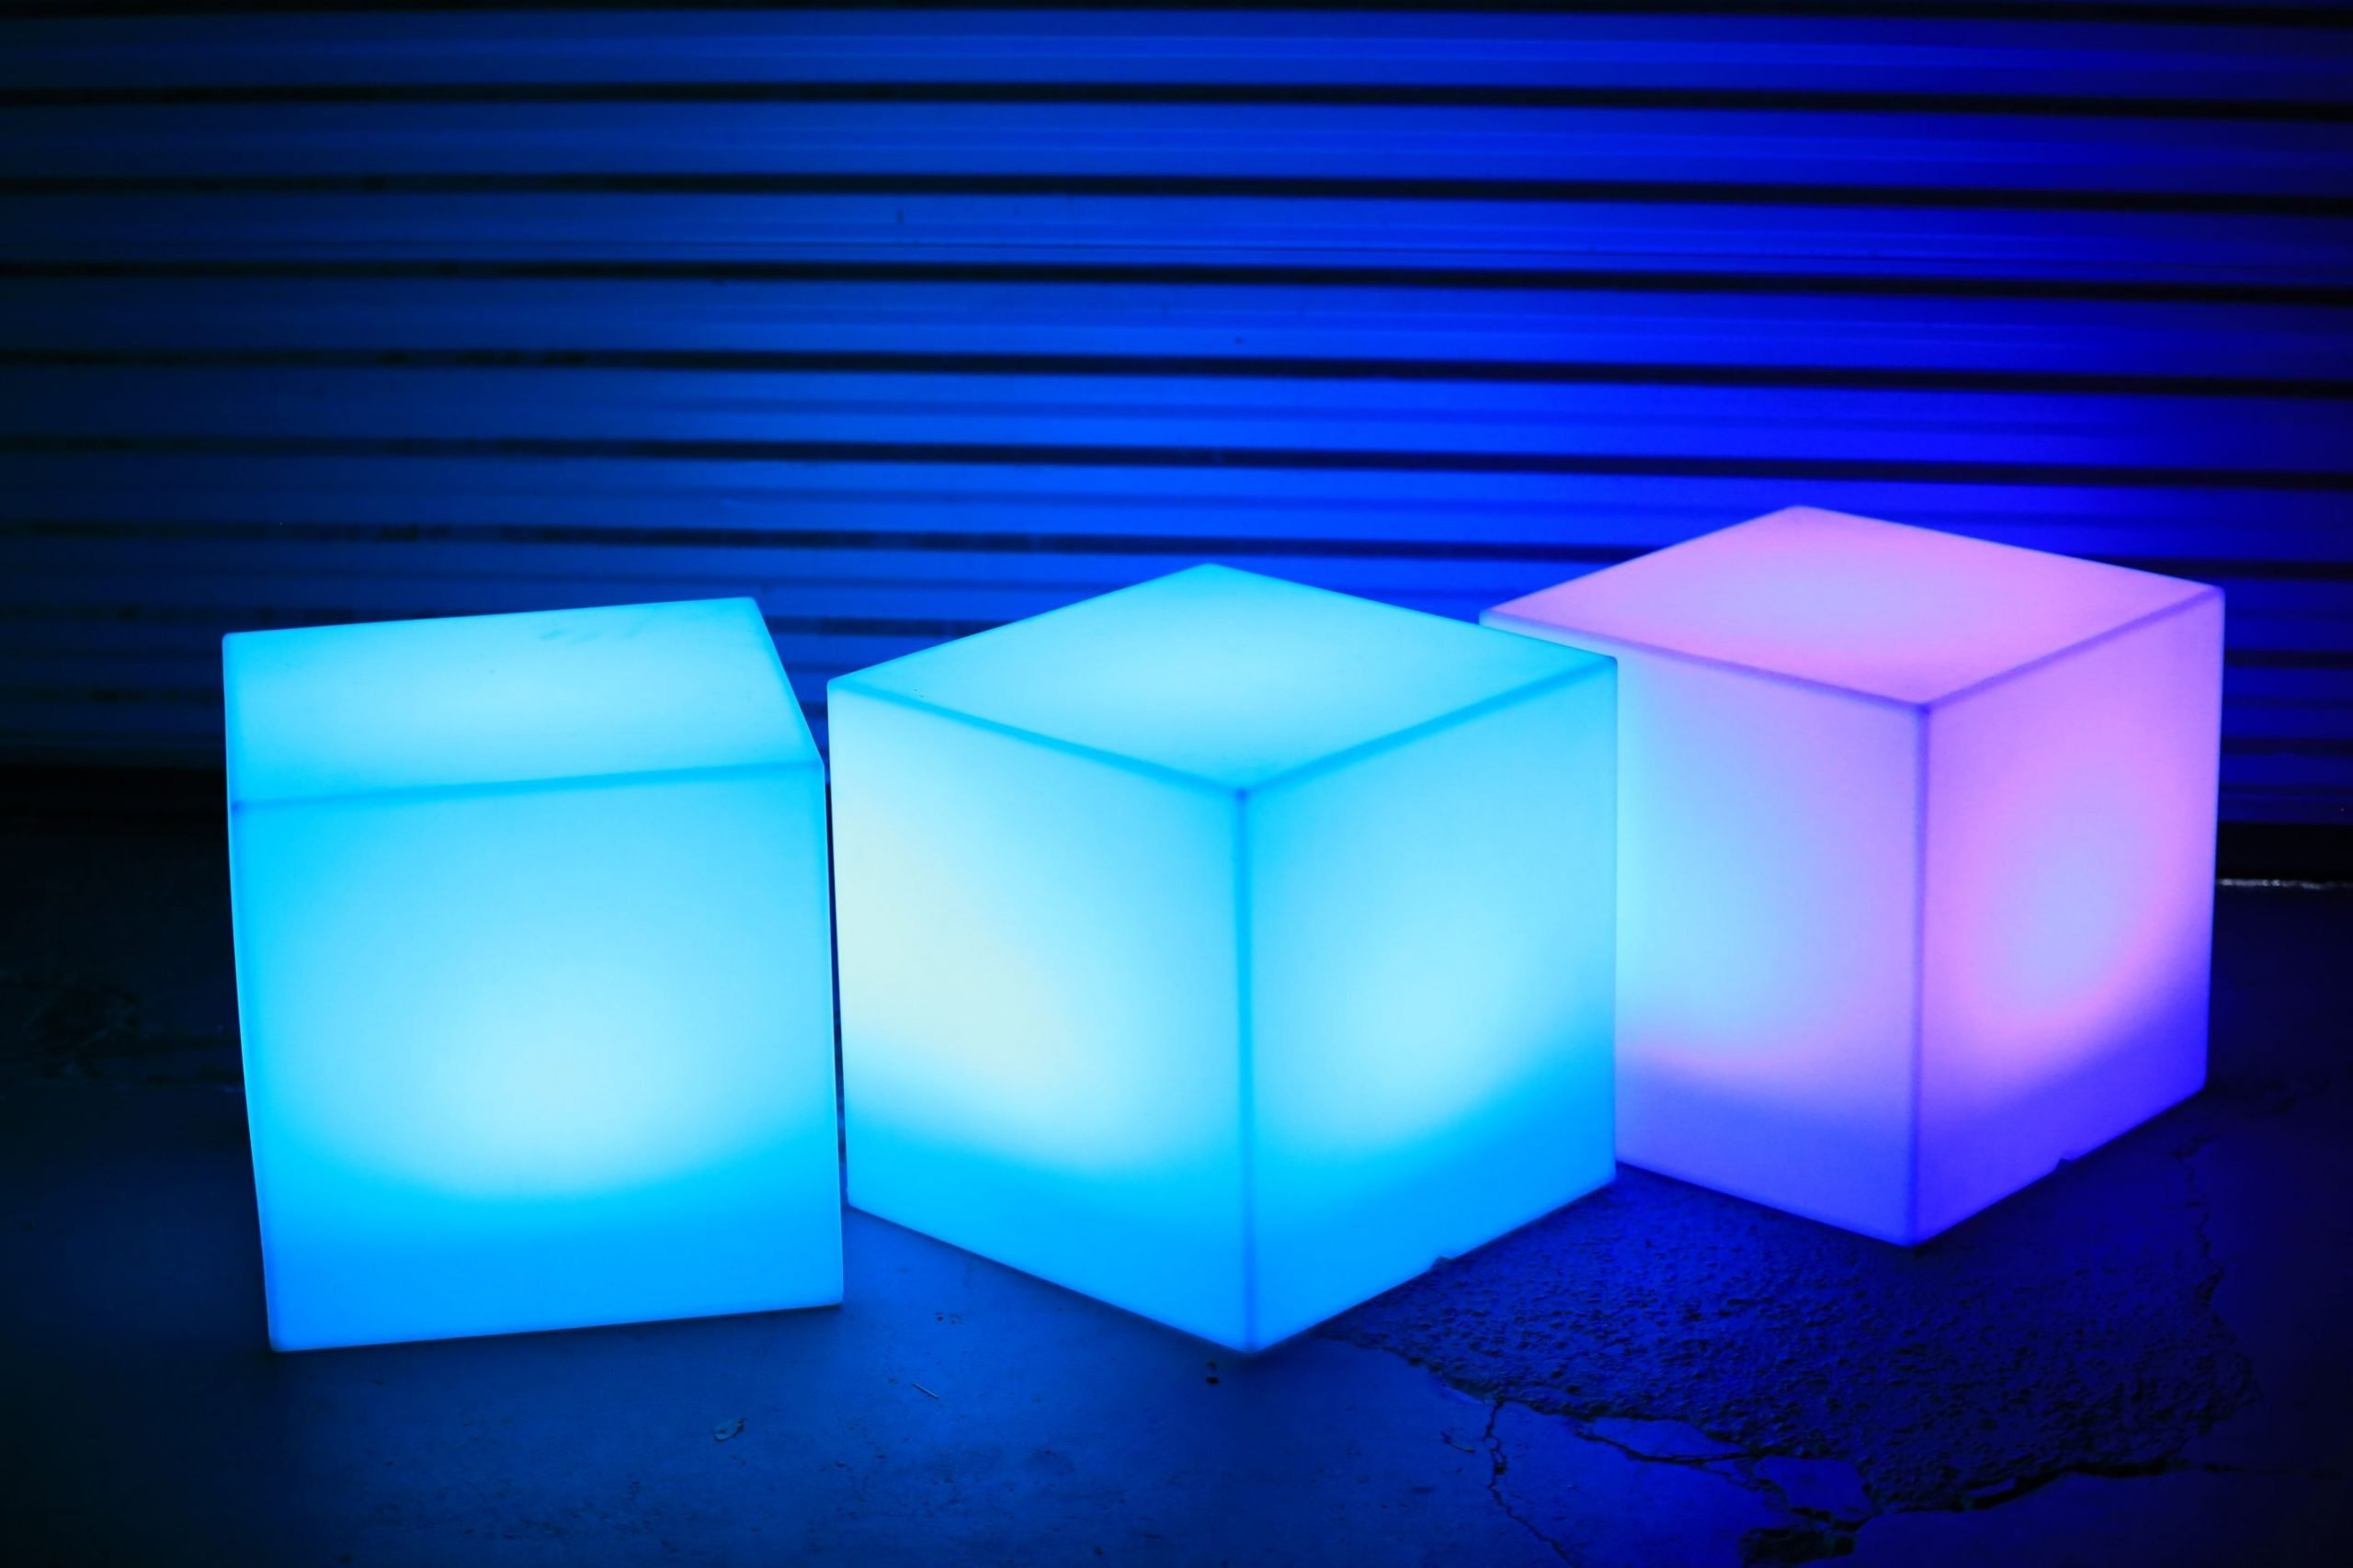 led cubes xclusive deejays winter springs florida wedding dj lighting photo booth entertainment scaled